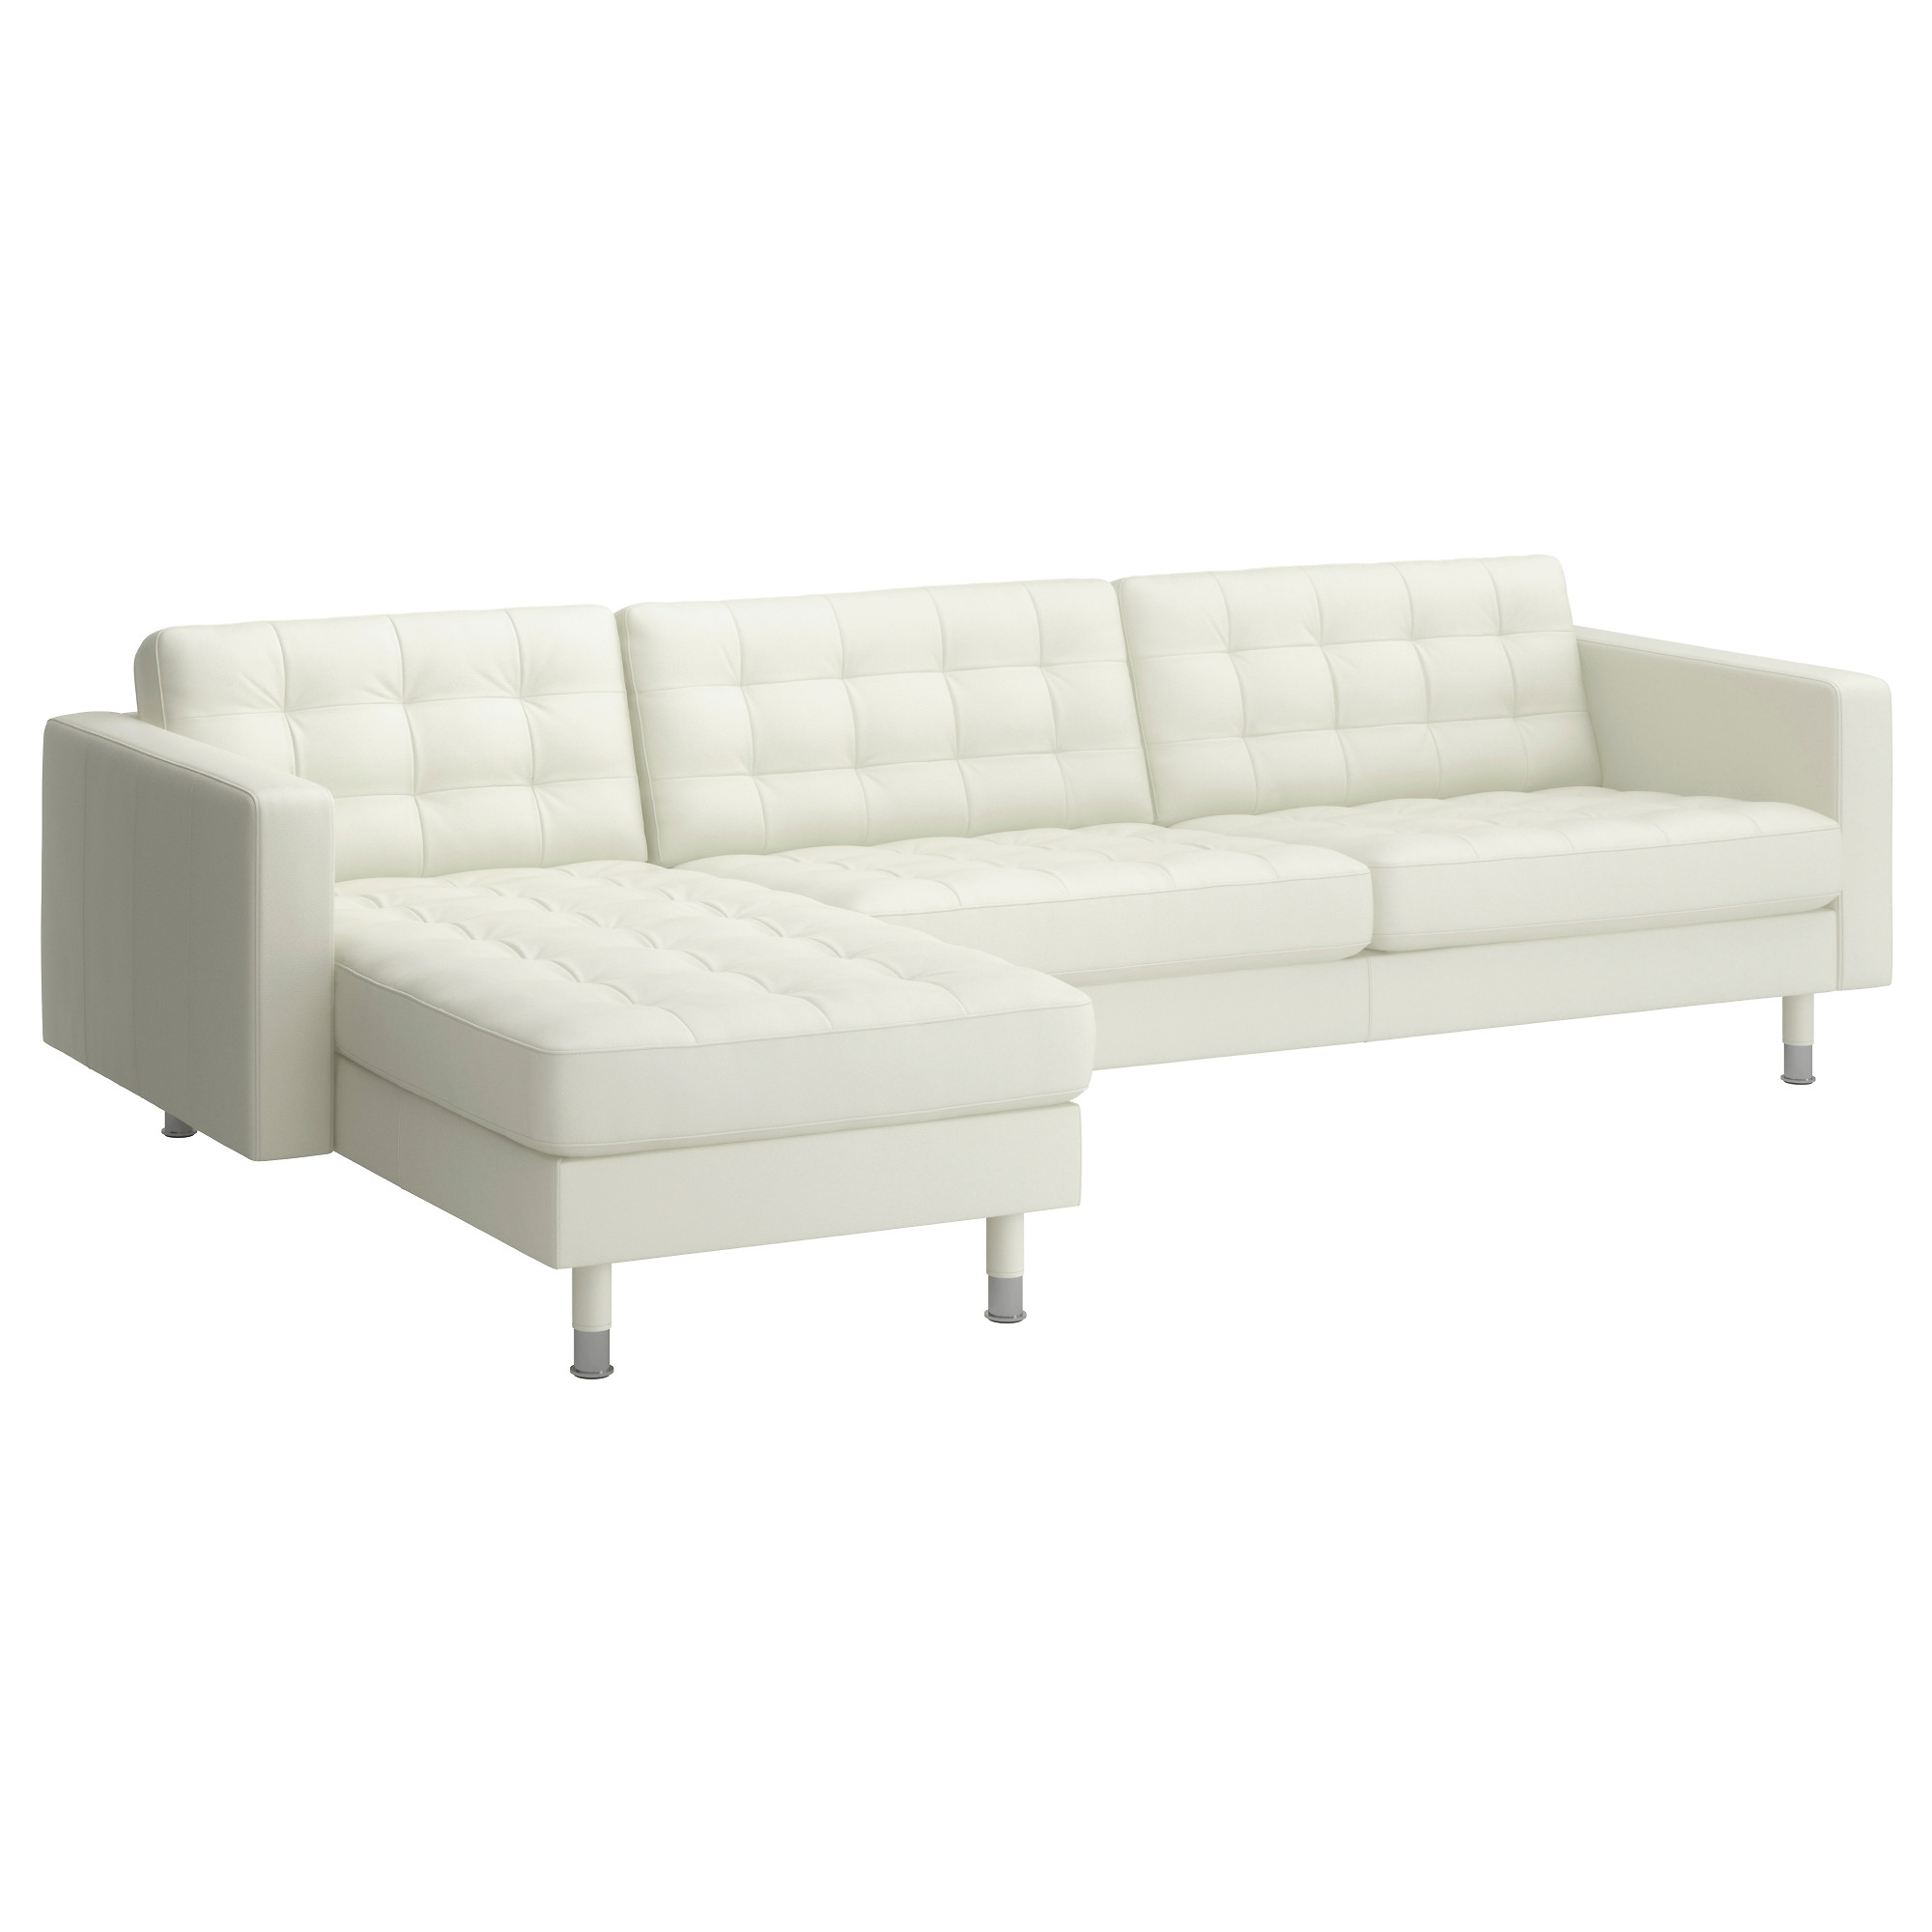 Landskrona Sectional, 4 Seat – Grann/bomstad White, Metal – Ikea In Latest Ikea Chaise Sofas (View 10 of 15)